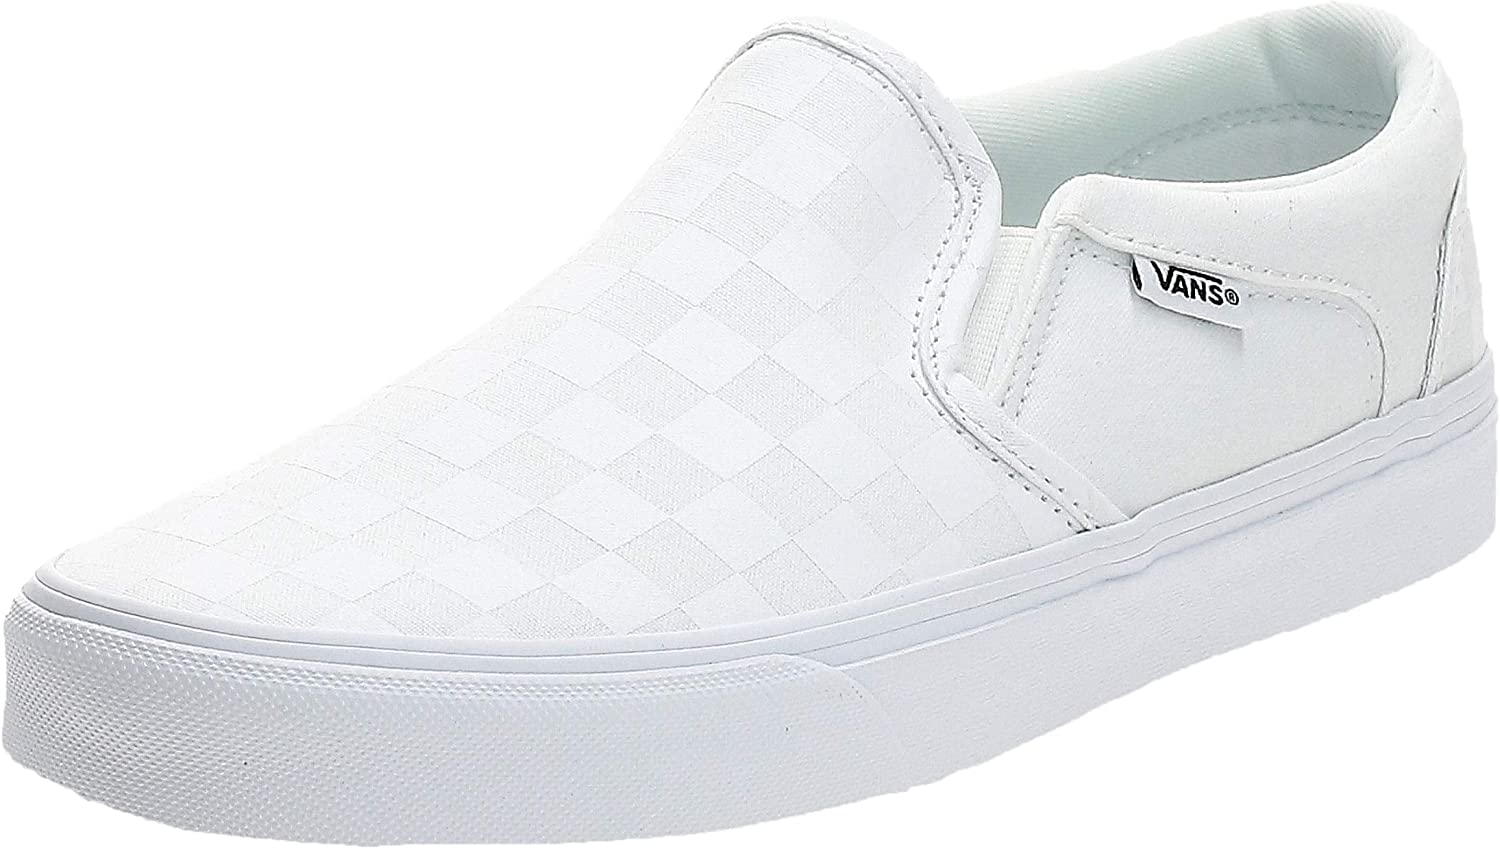 Vans Asher Skate ! Super beauty product restock quality top! Shoe Sales for sale Slip-On Checkerboard